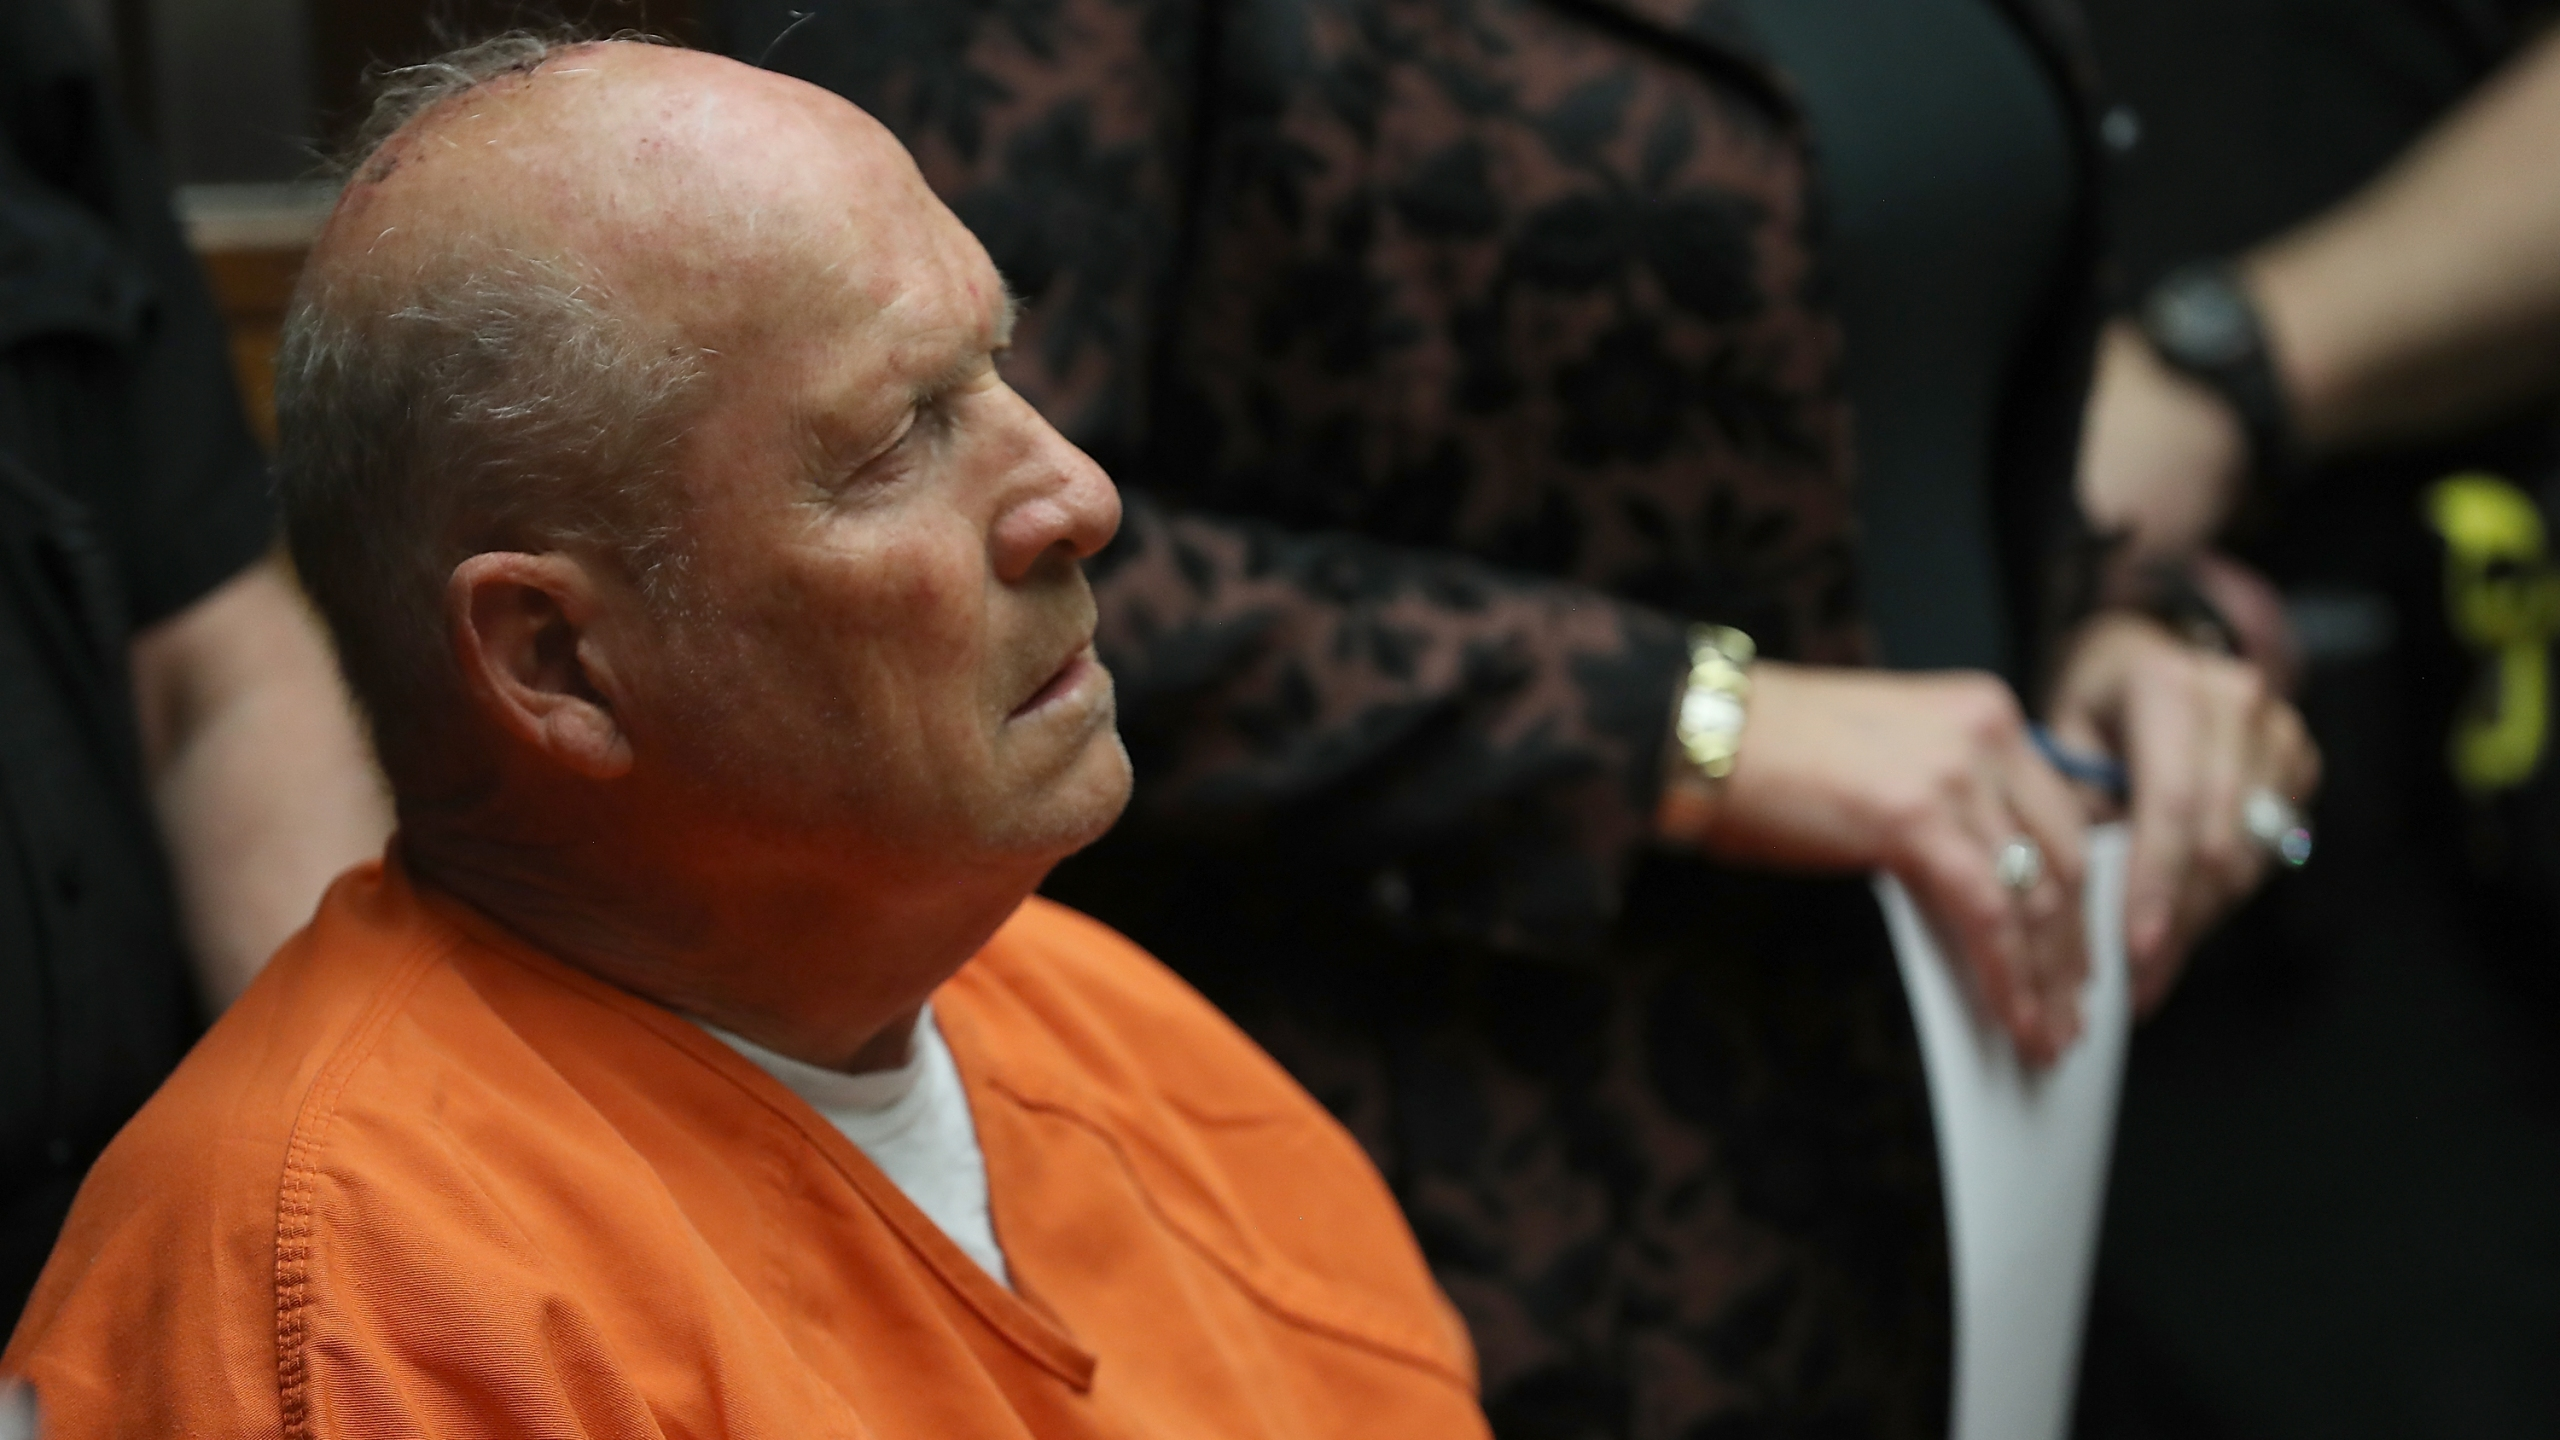 Joseph James DeAngelo, the suspected Golden State Killer, appears in court in Sacramento for his arraignment on April 27, 2018. (Justin Sullivan / Getty Images)